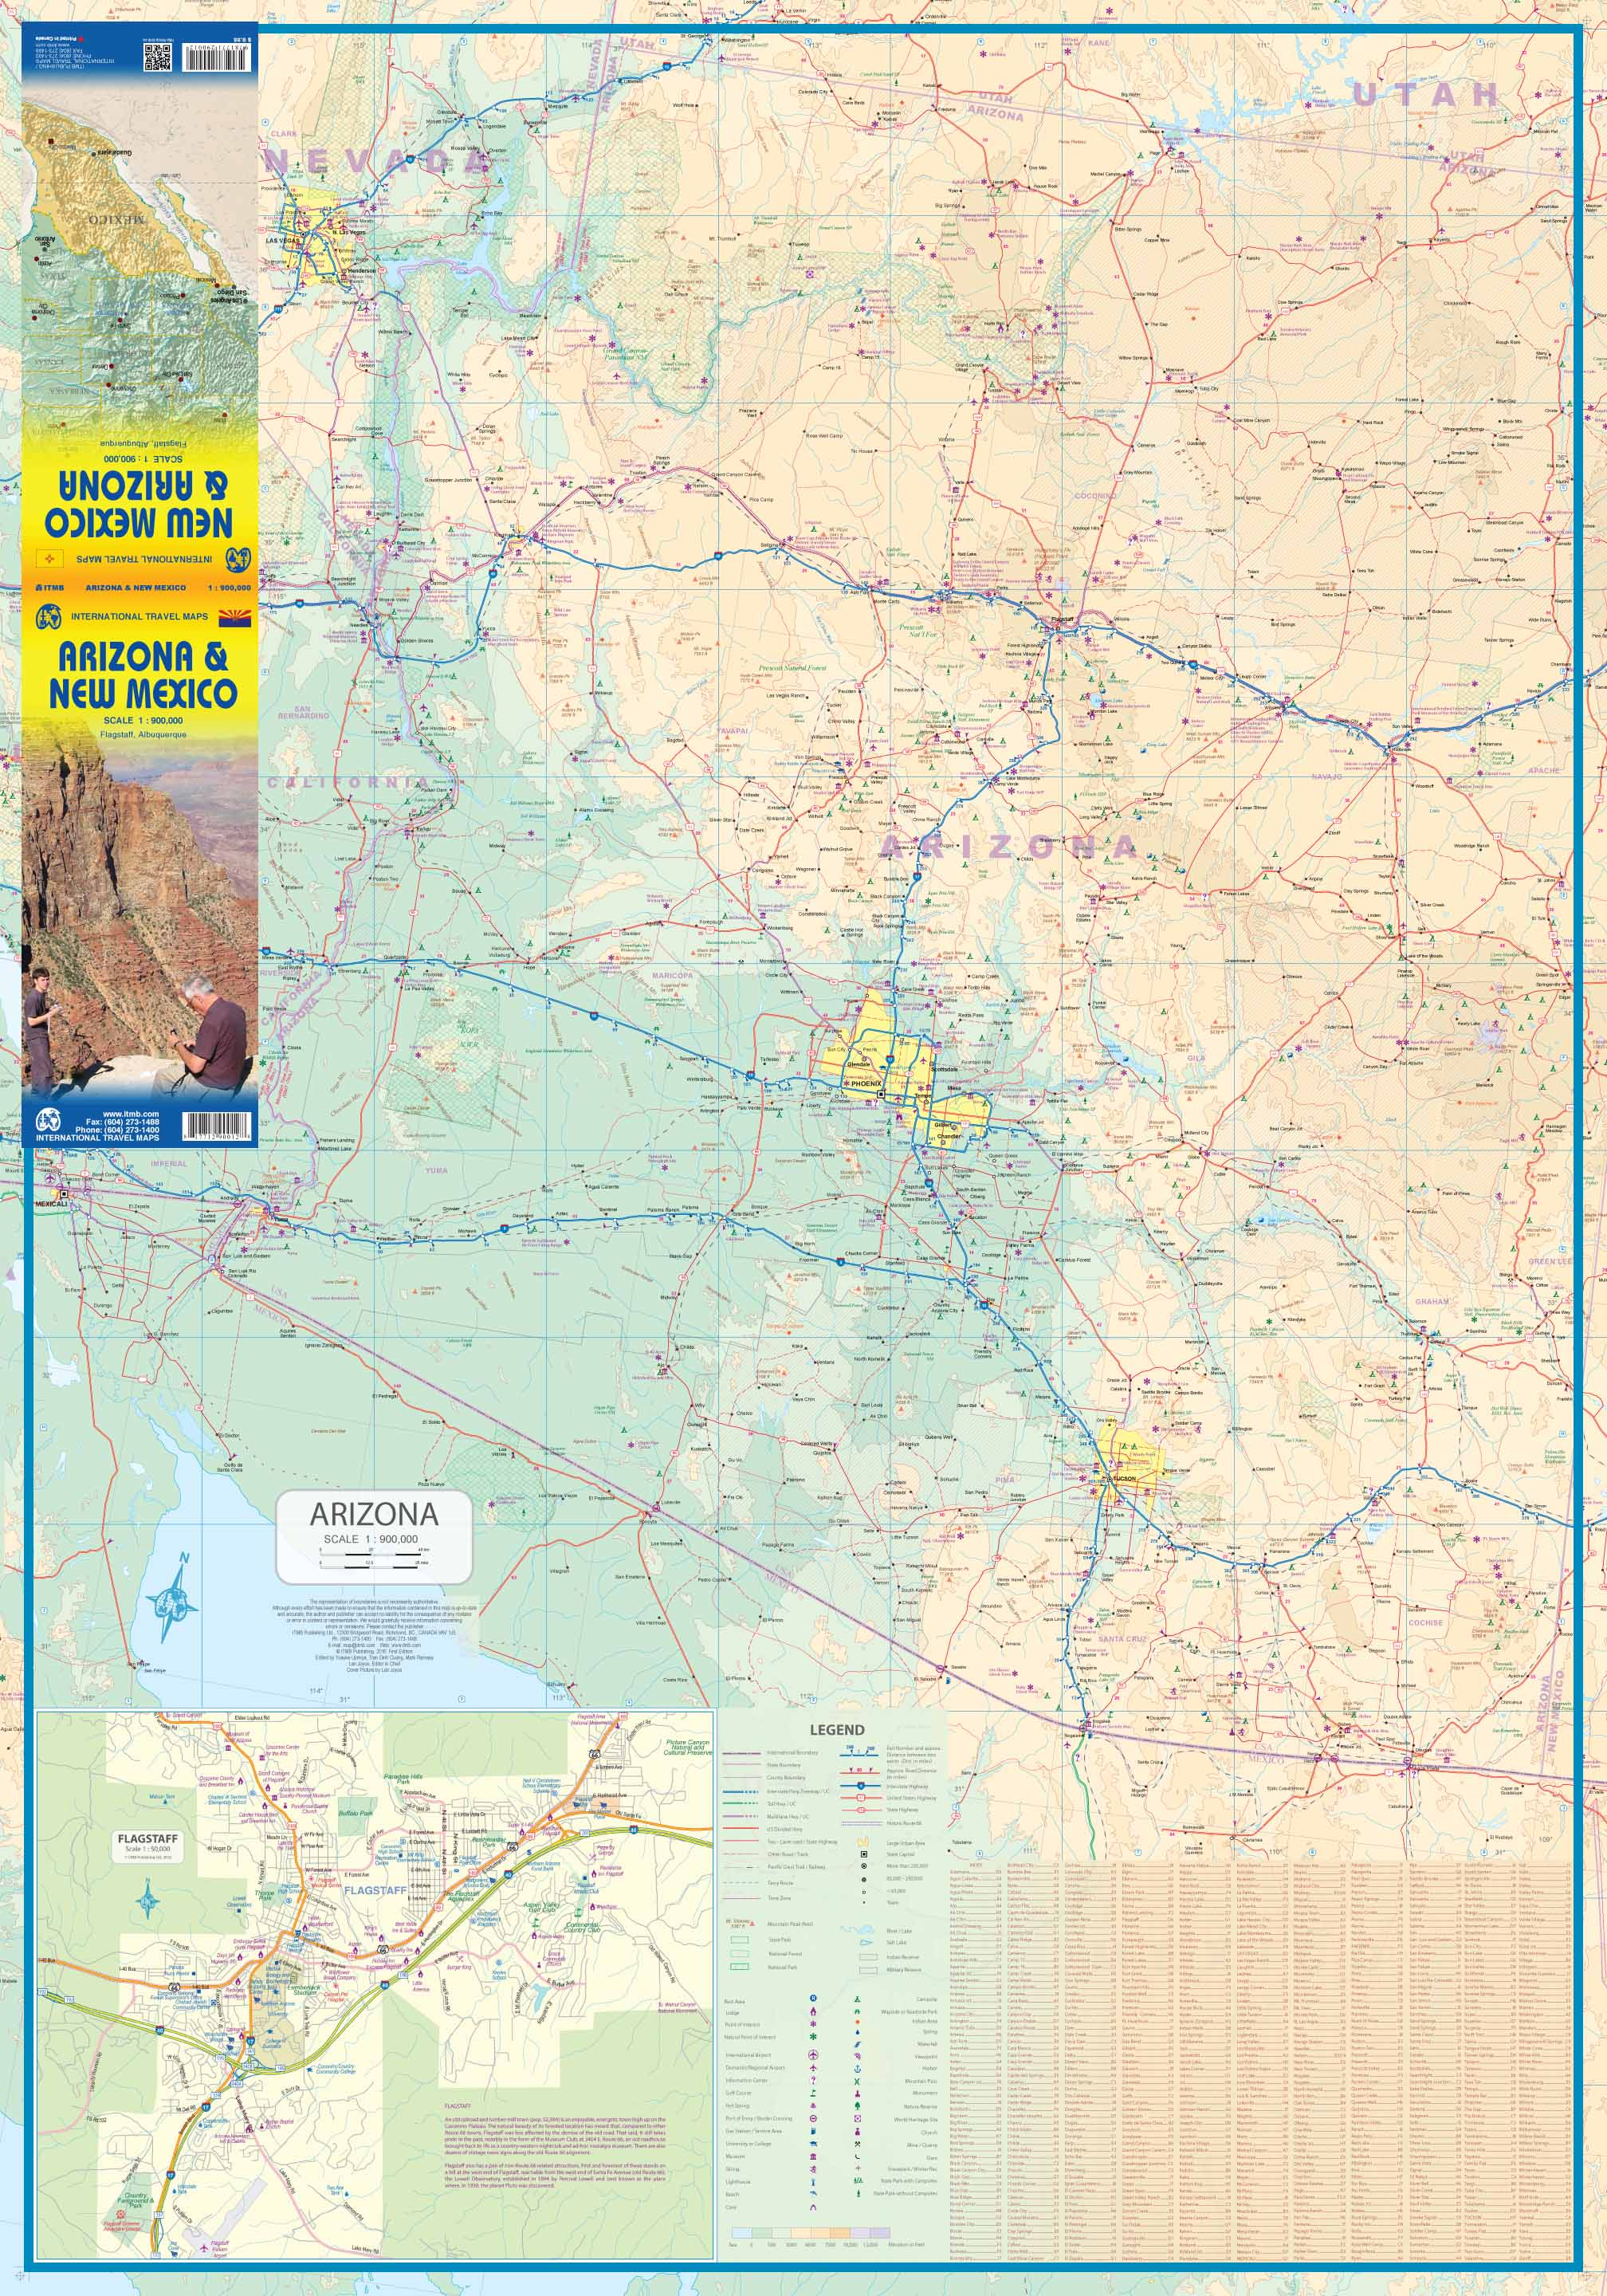 Maps for travel City Maps Road Maps Guides Globes Topographic – Arizona Travel Map